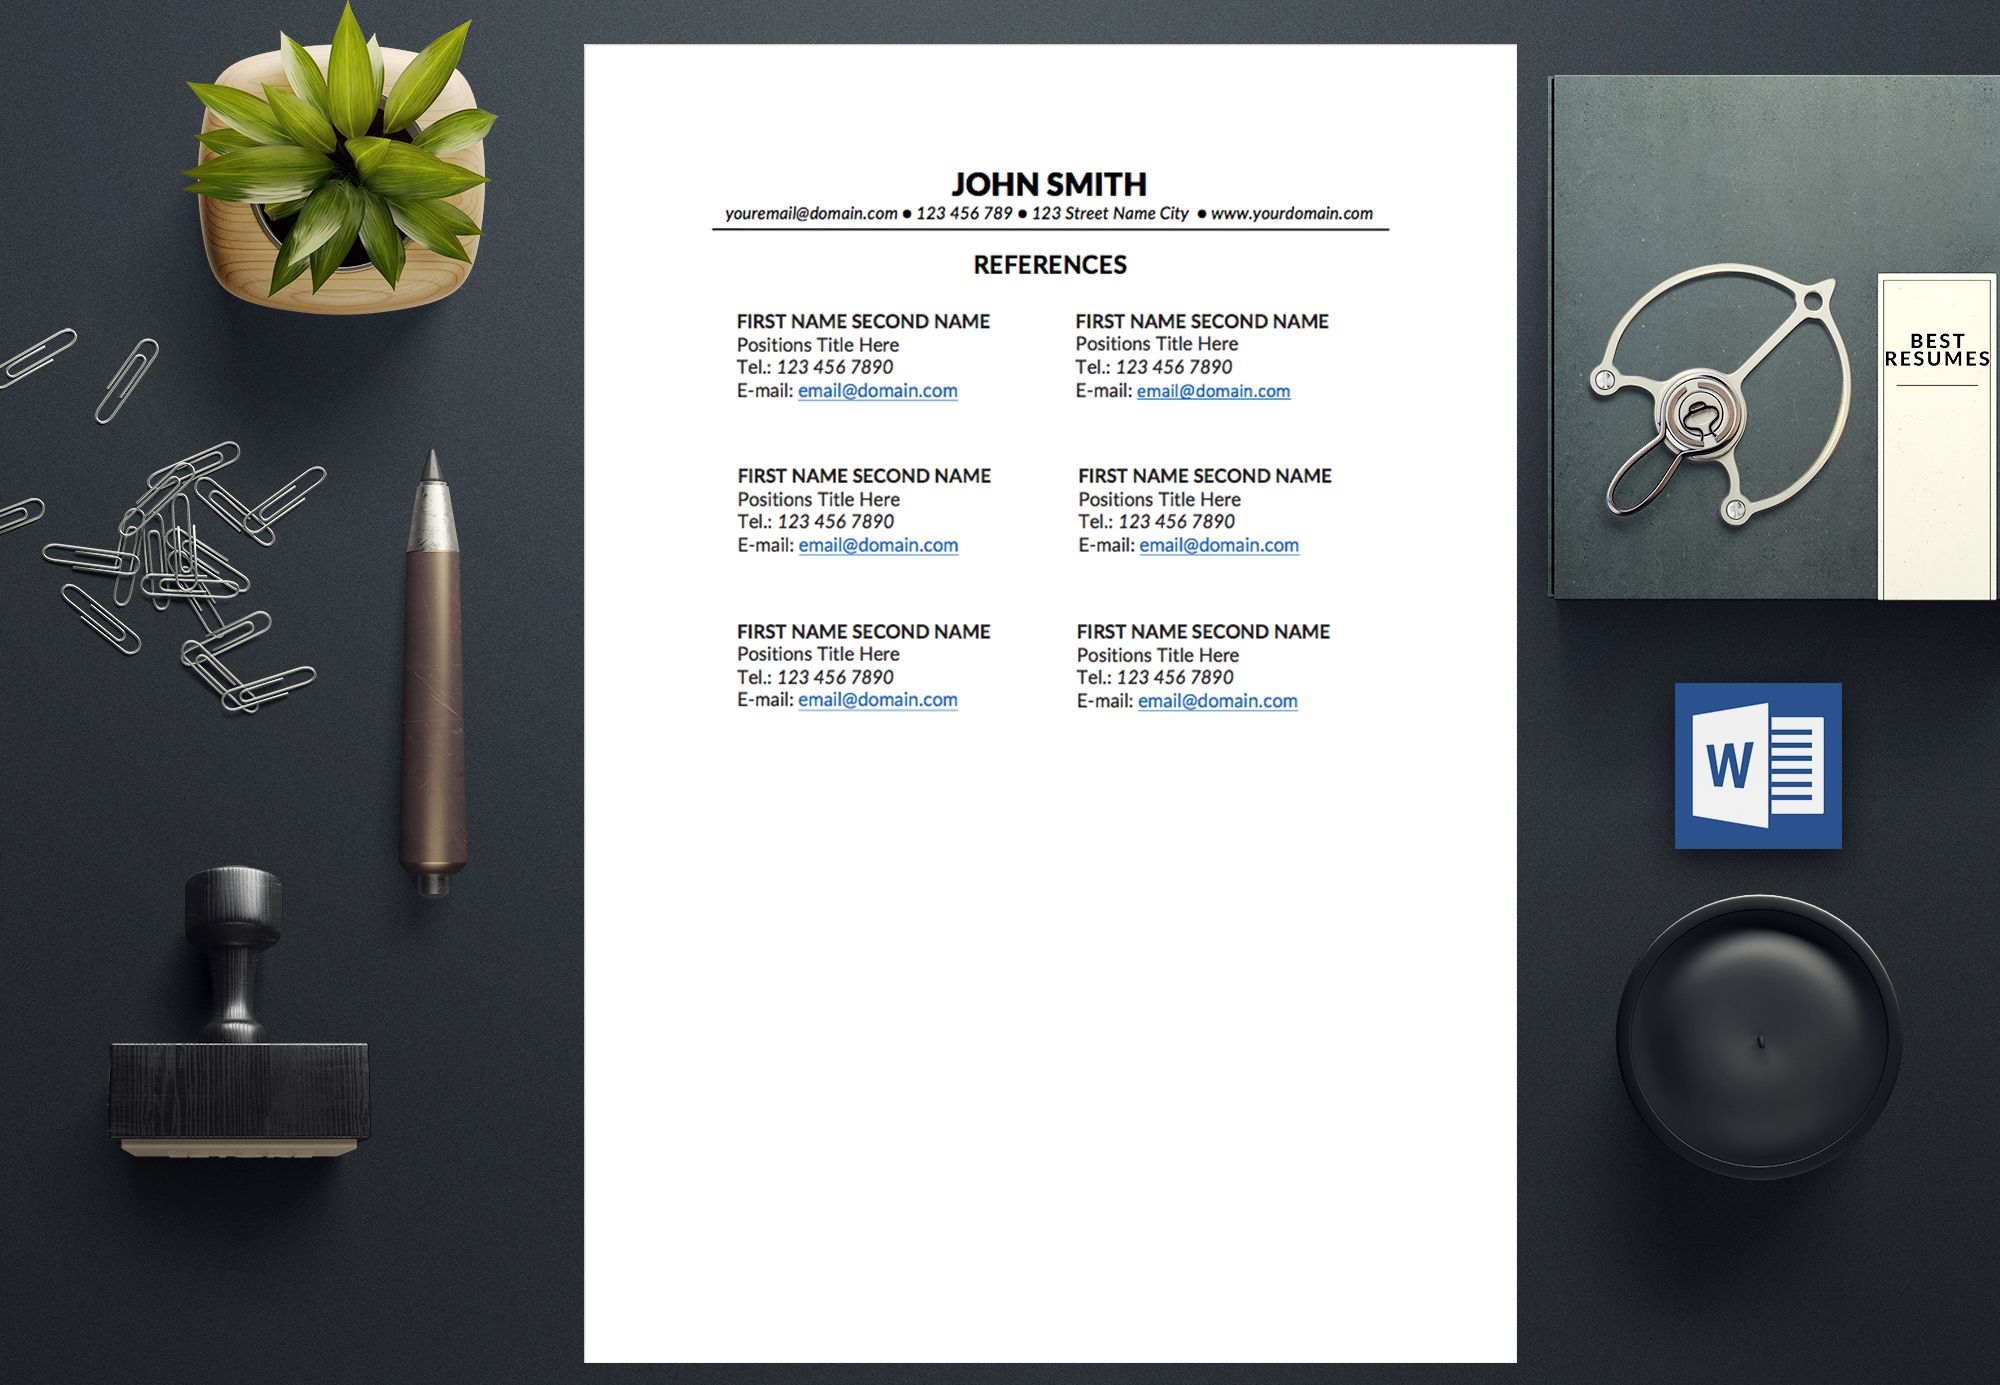 Resume Template John Smith  John Smith